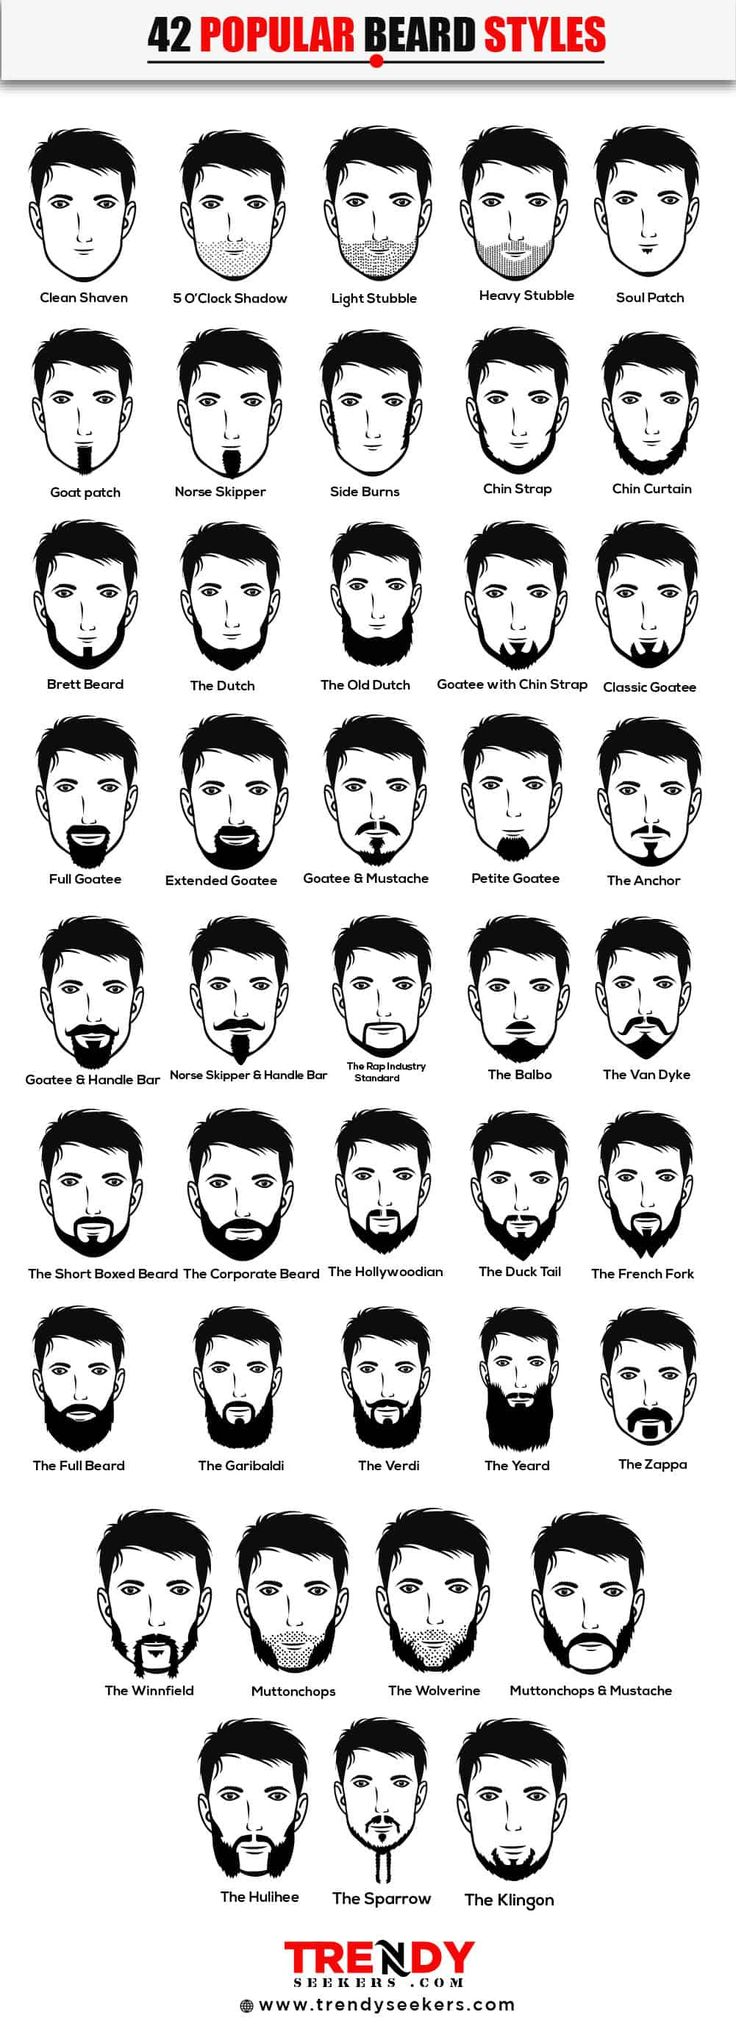 How to Grow A Beard – The 42 Beard Styles (2019) [ULTIMATE GUIDE] – Trendy Seekers